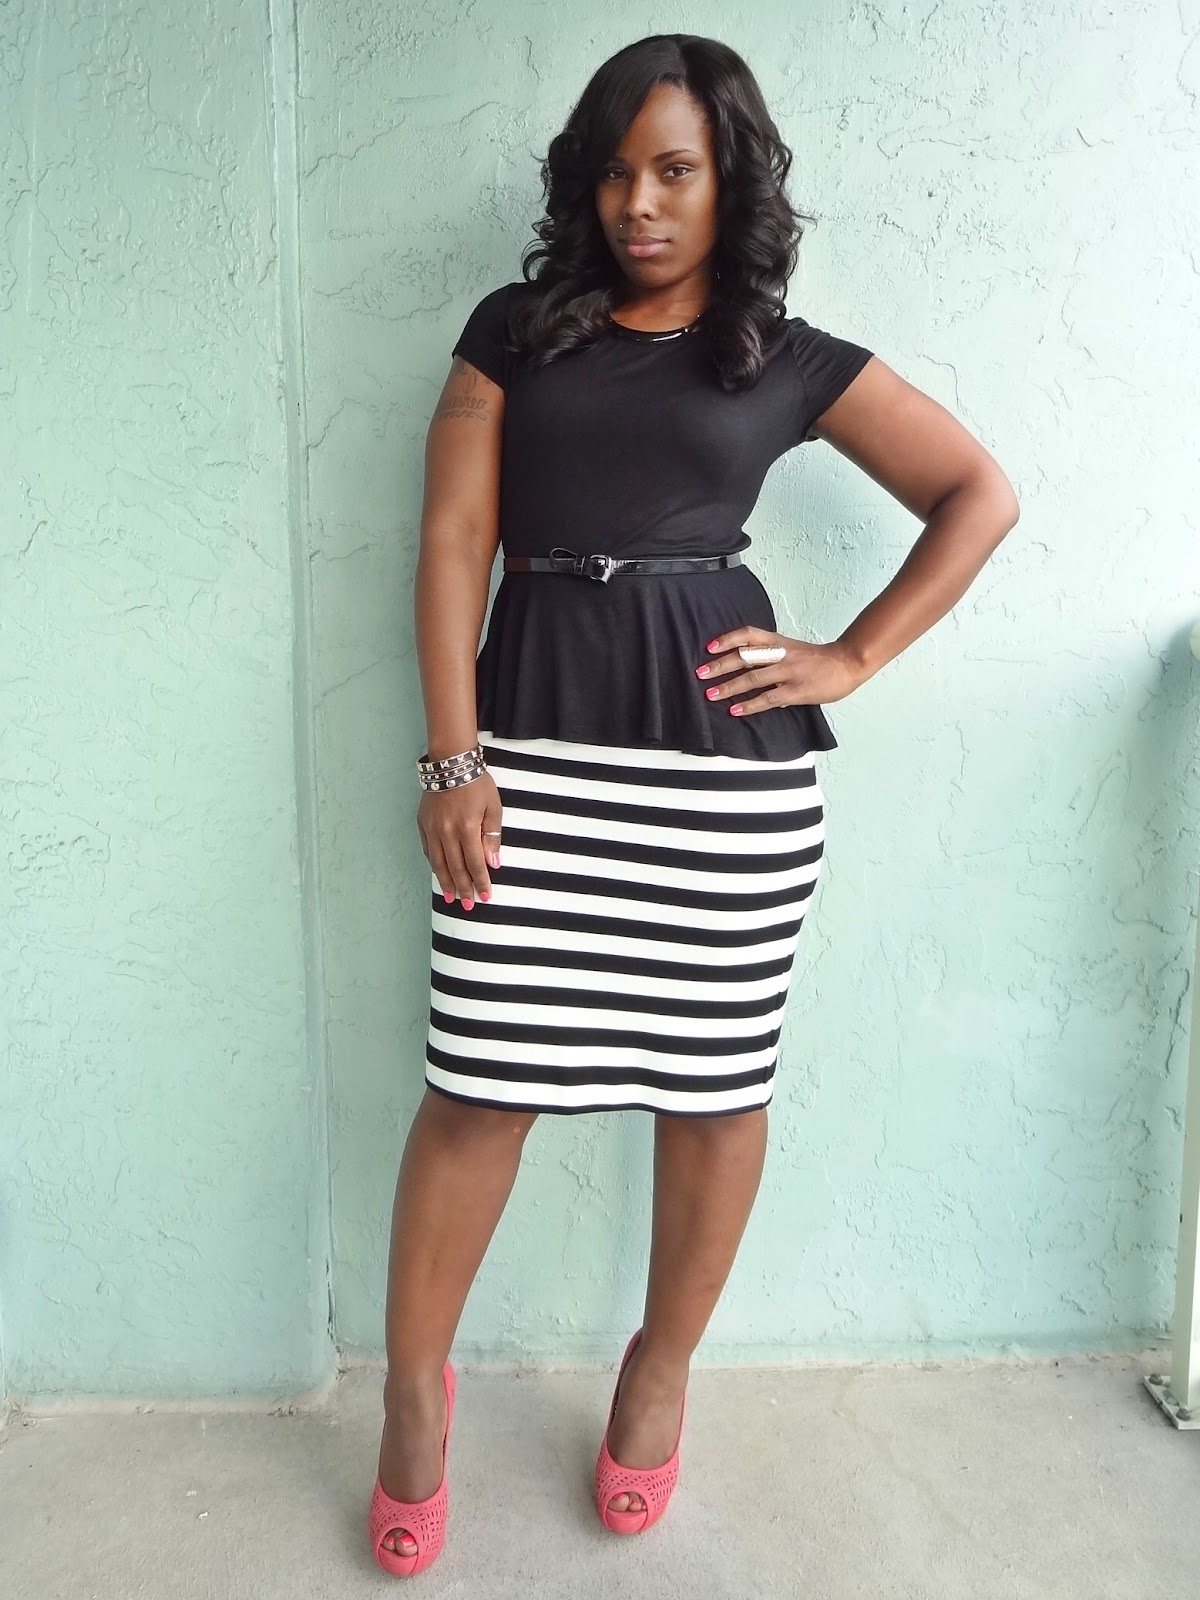 Peplum Problems - Curves and Confidence